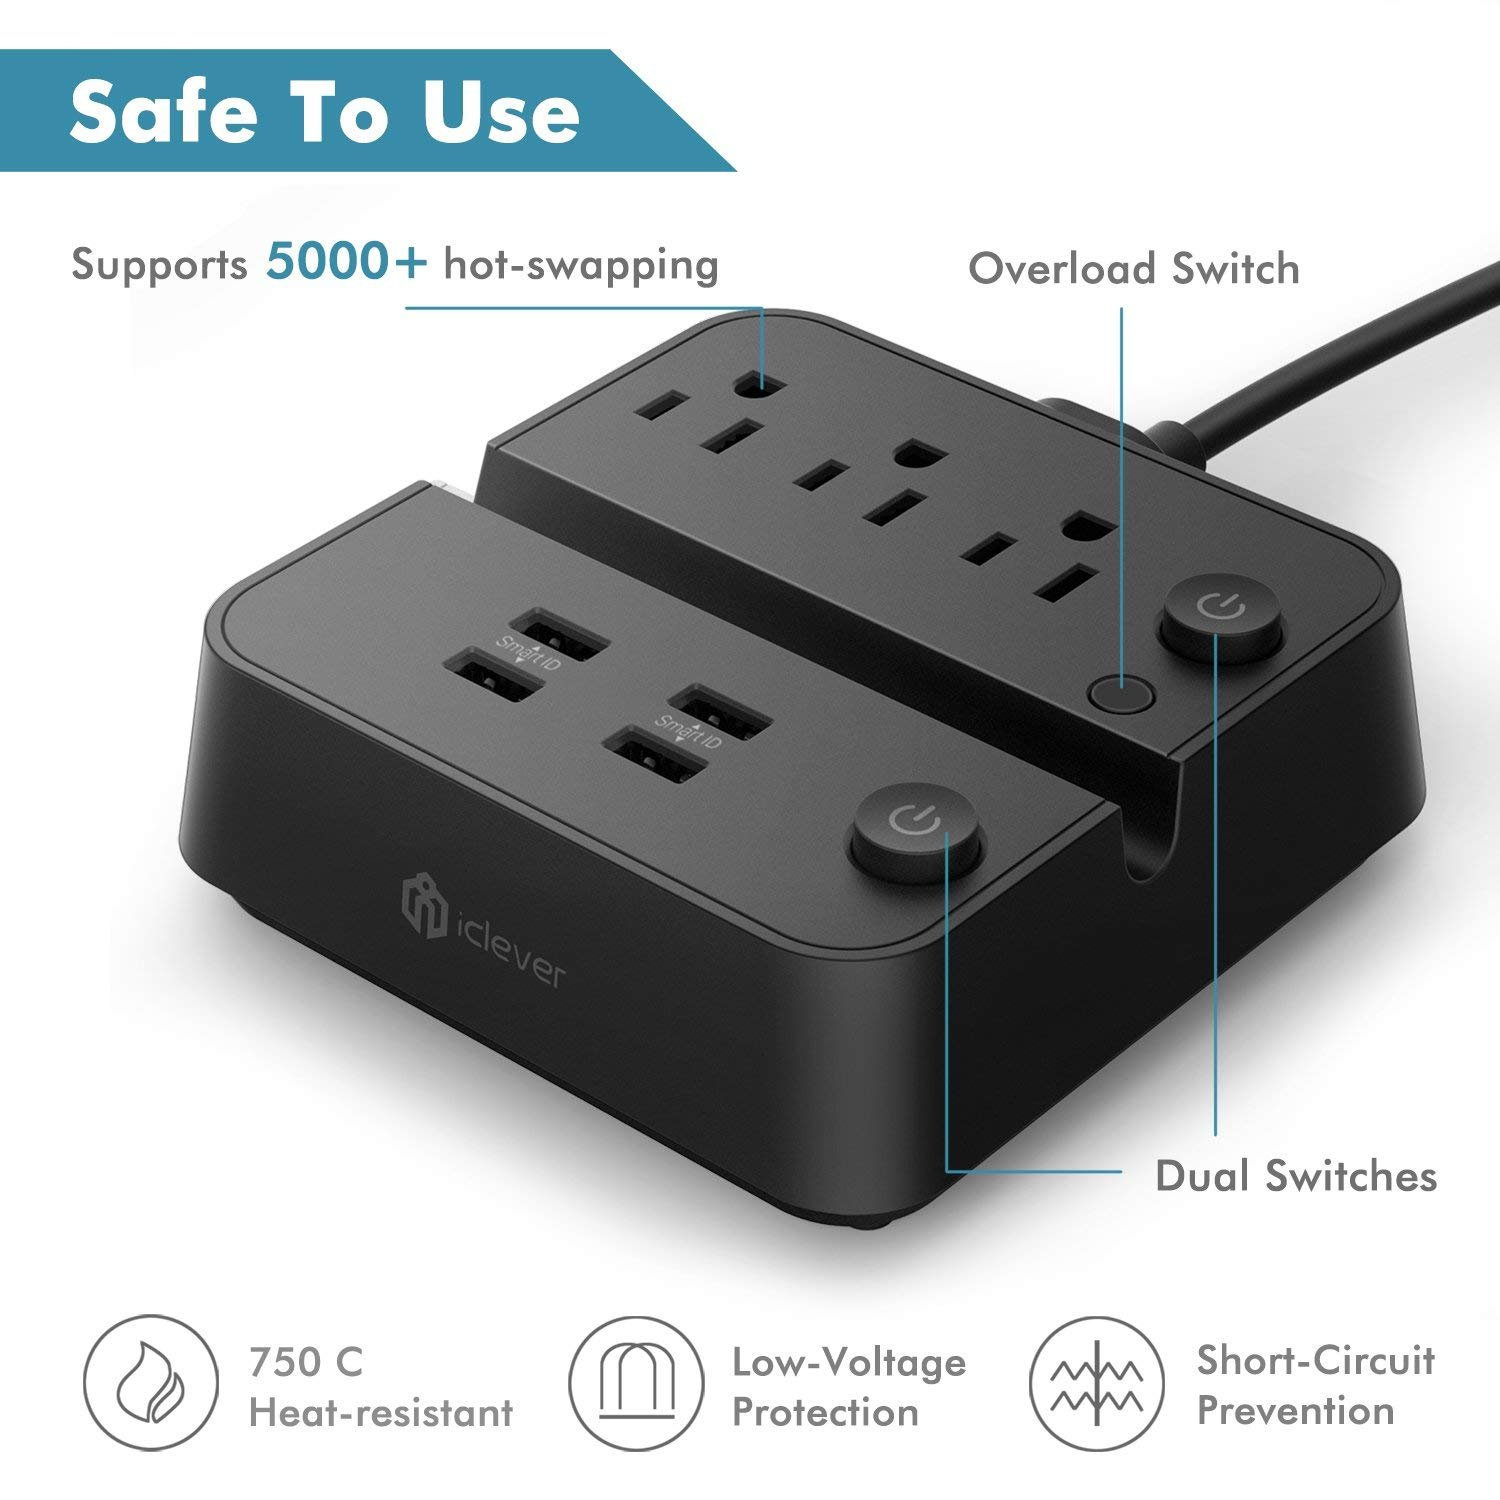 3 Outlets 3 USB Ports Charging Station with Over-Load Switch and Phone//Tablet Holder 5ft Extension Cord-Black IC-BS12 iClever USB Power Strip Surge Protector